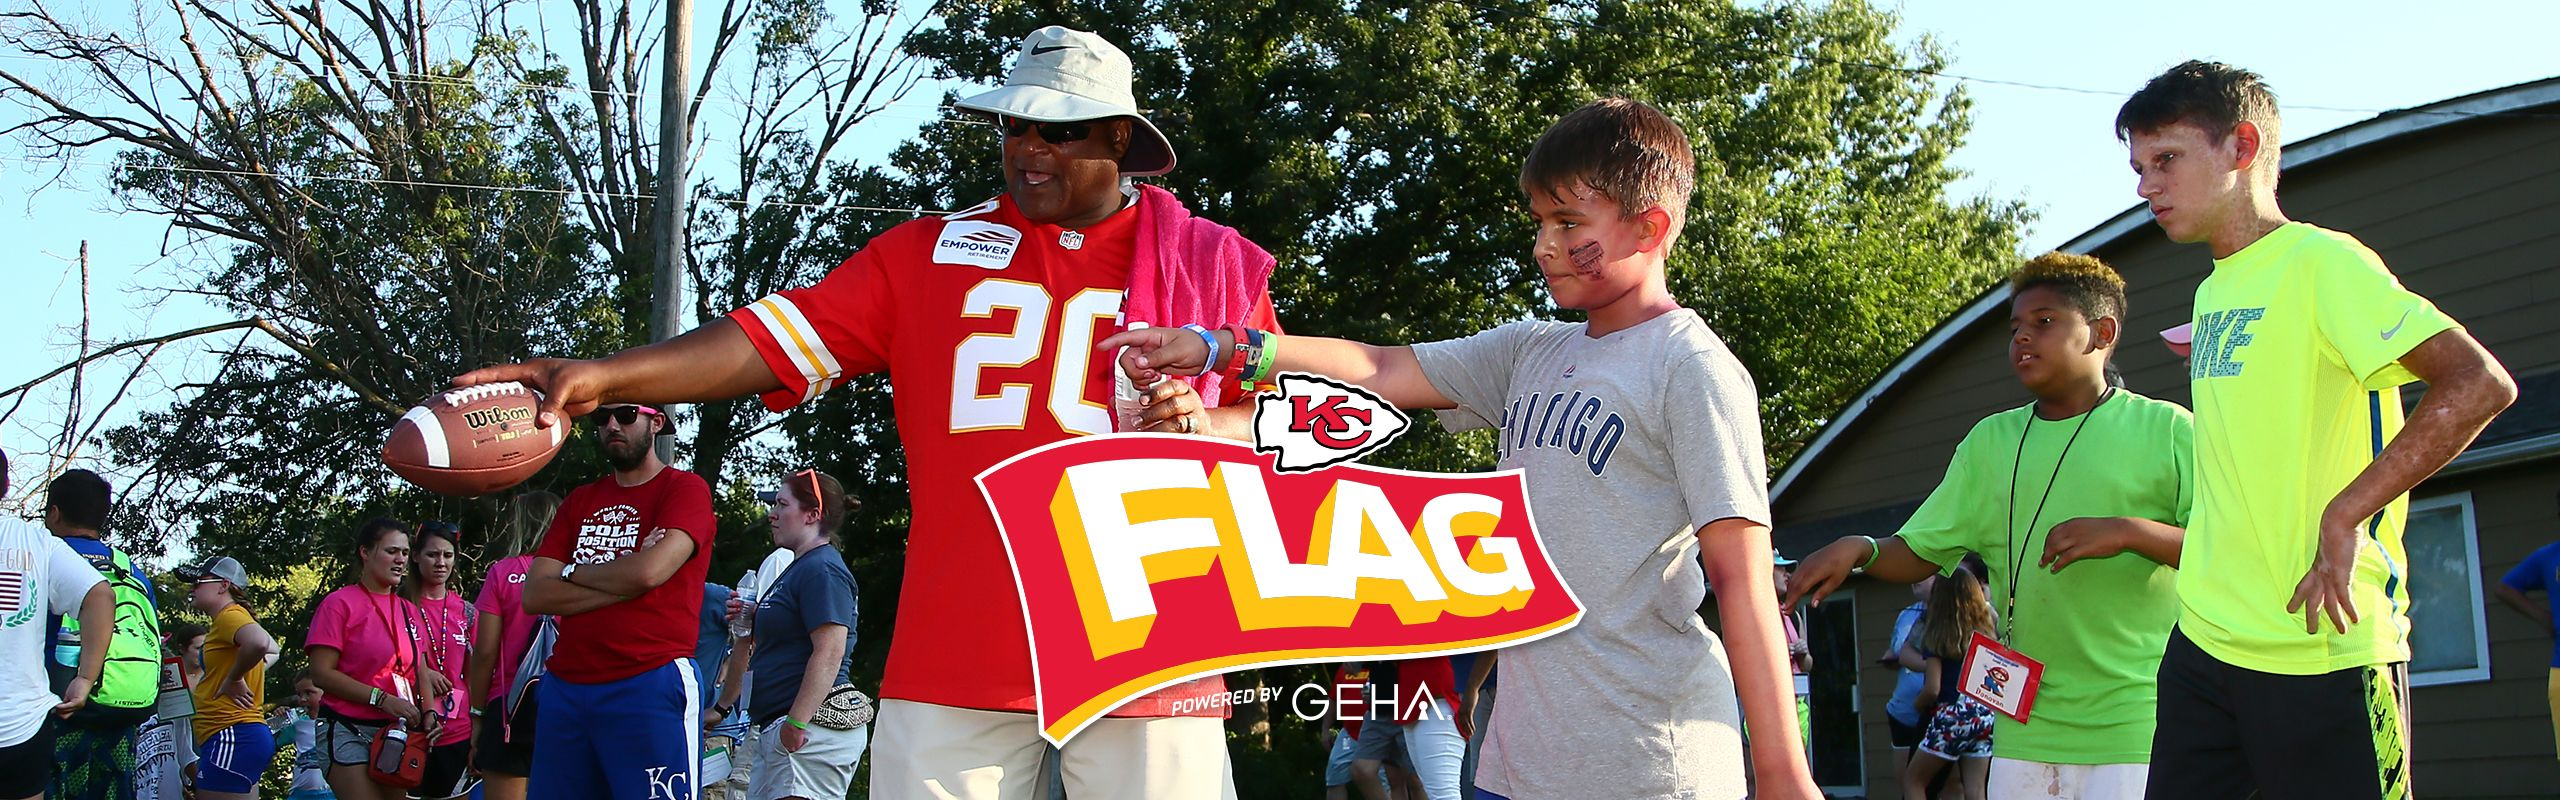 chiefs-flag-learn-pros